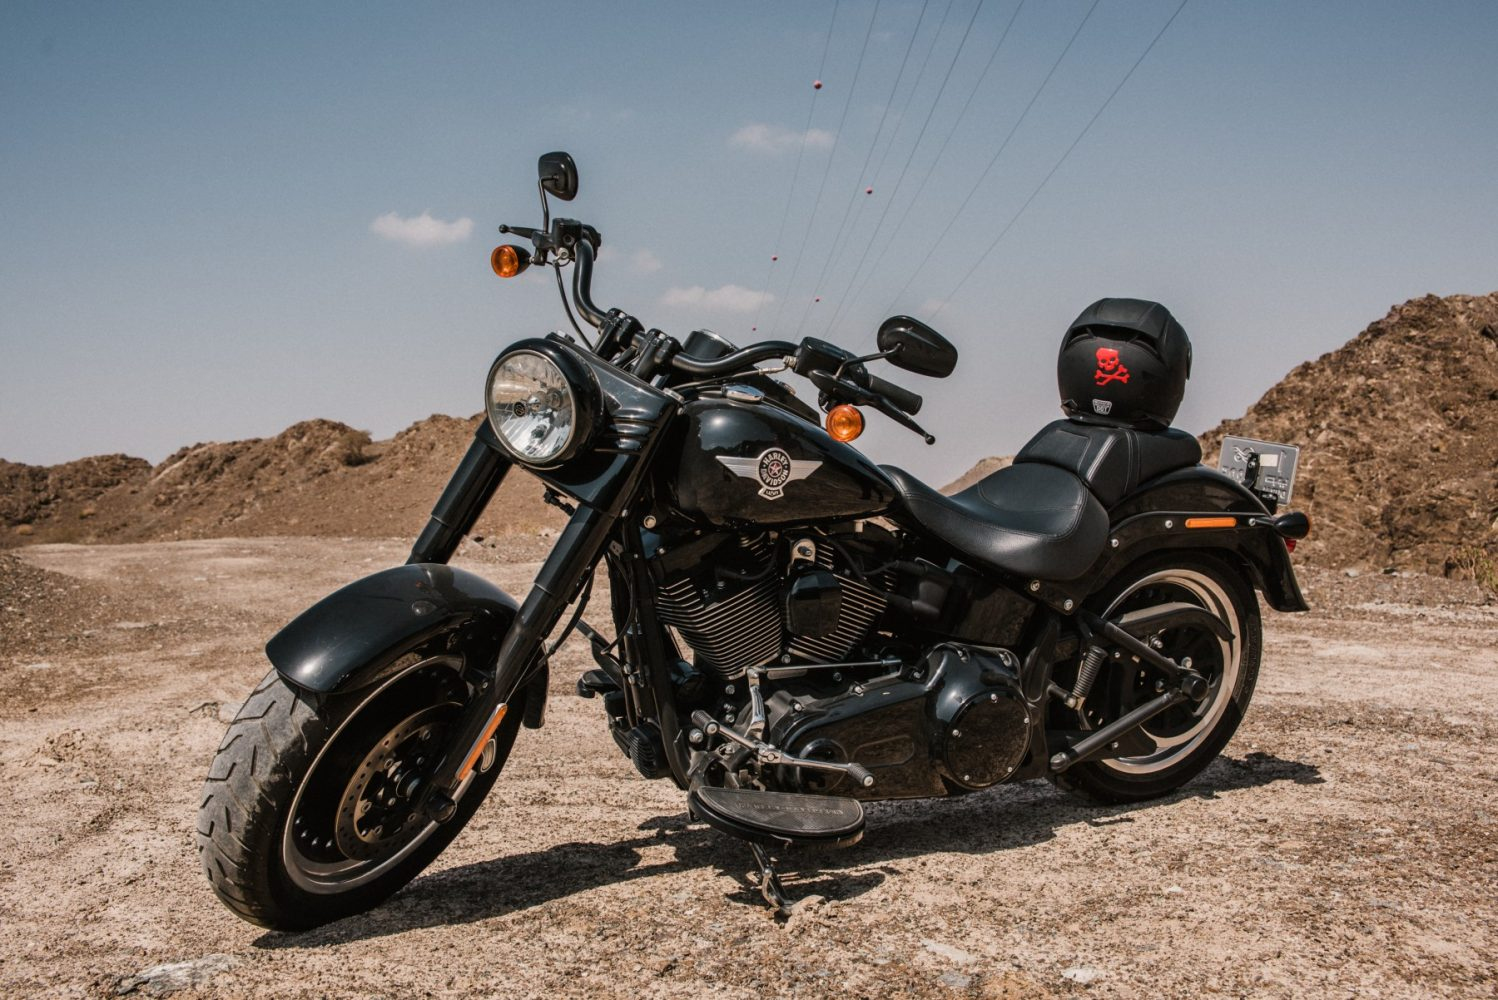 ride arnie, ride! 2016 harley davidson fat boy s review